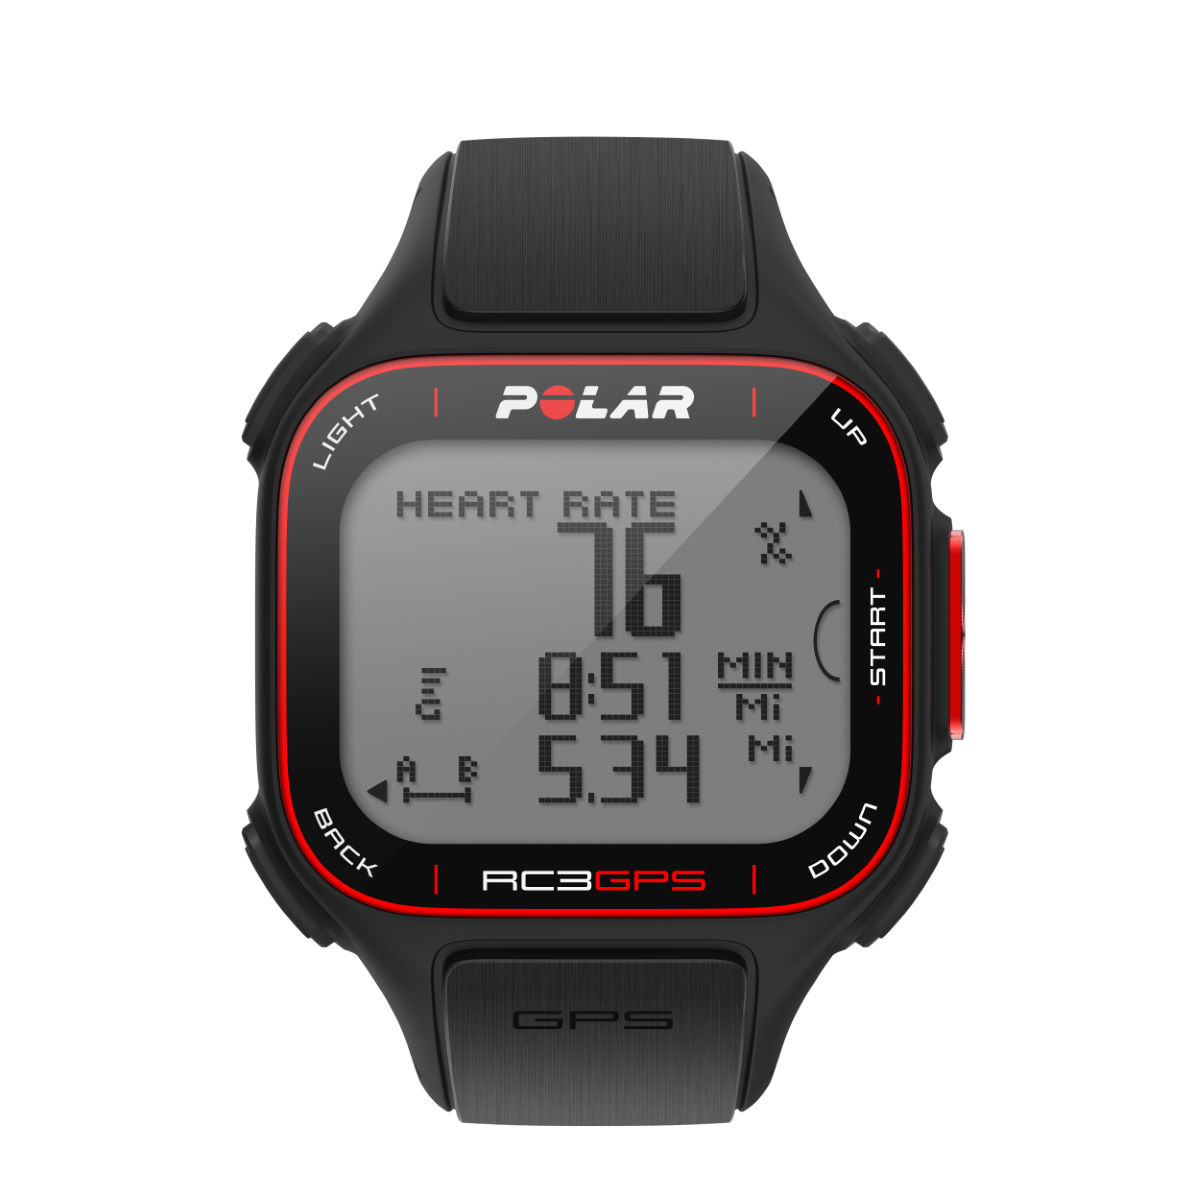 Polar RC3 GPS with Heart Rate 2014